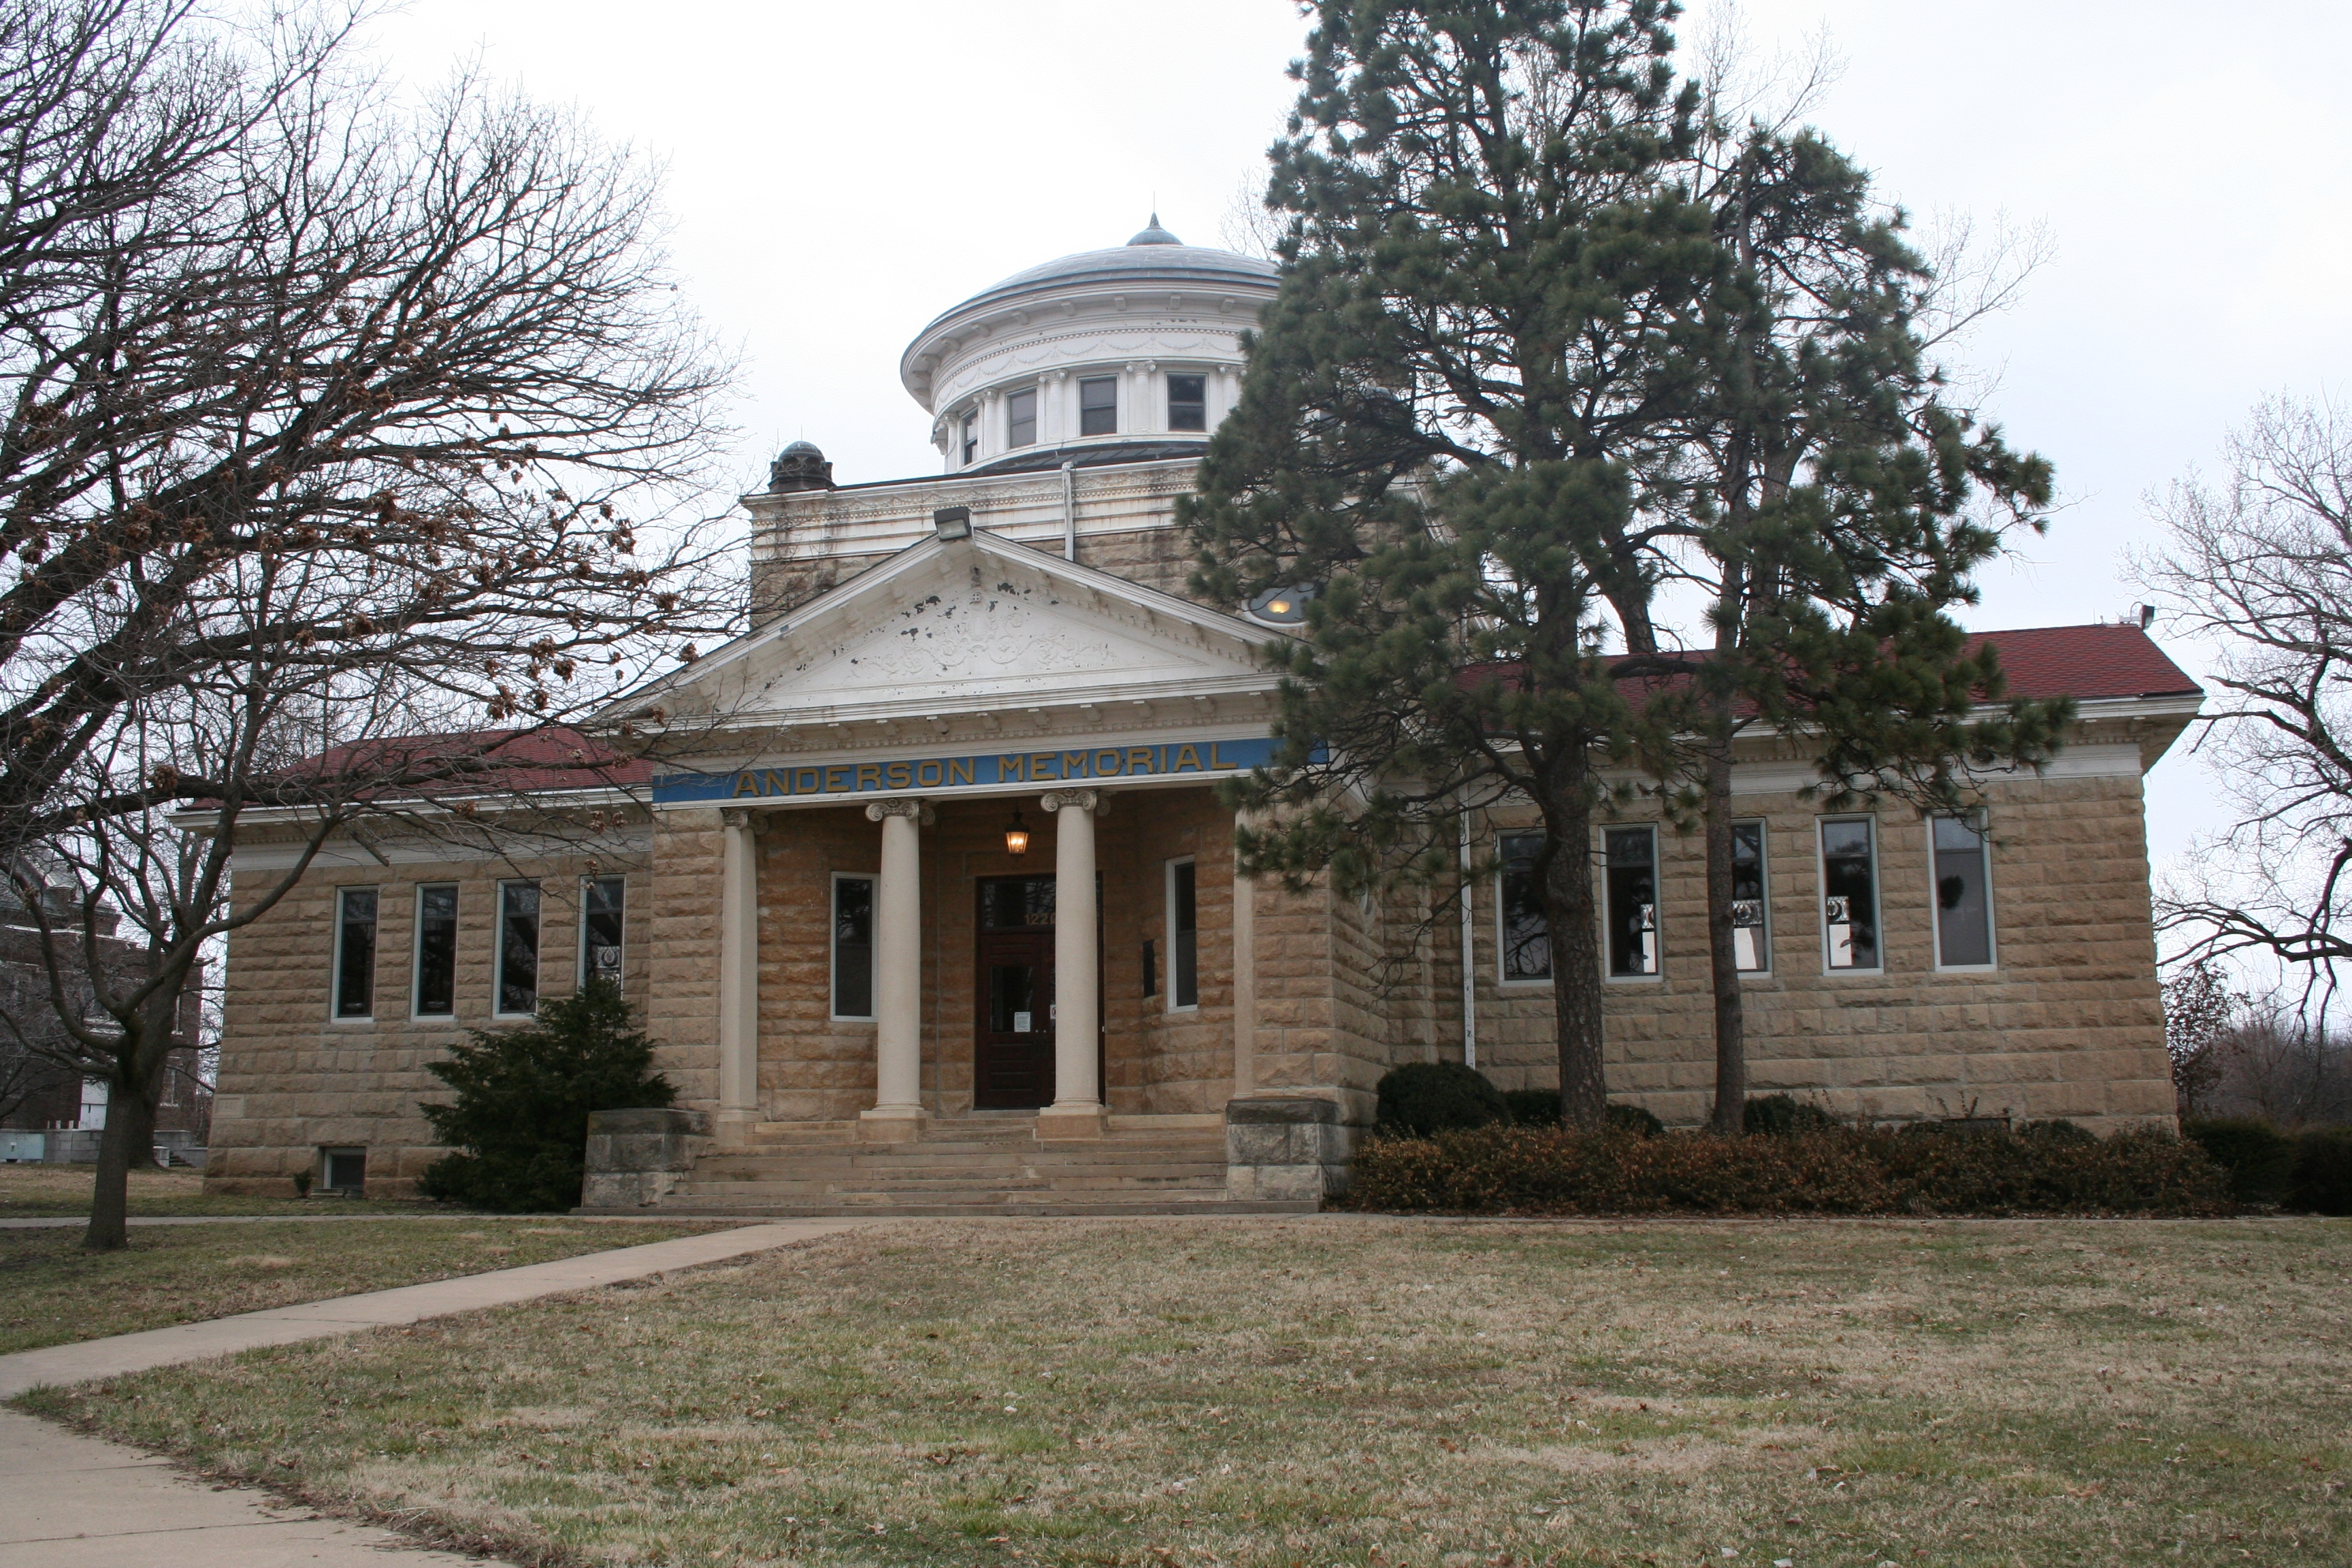 Old Anderson Memorial Library, Emporia